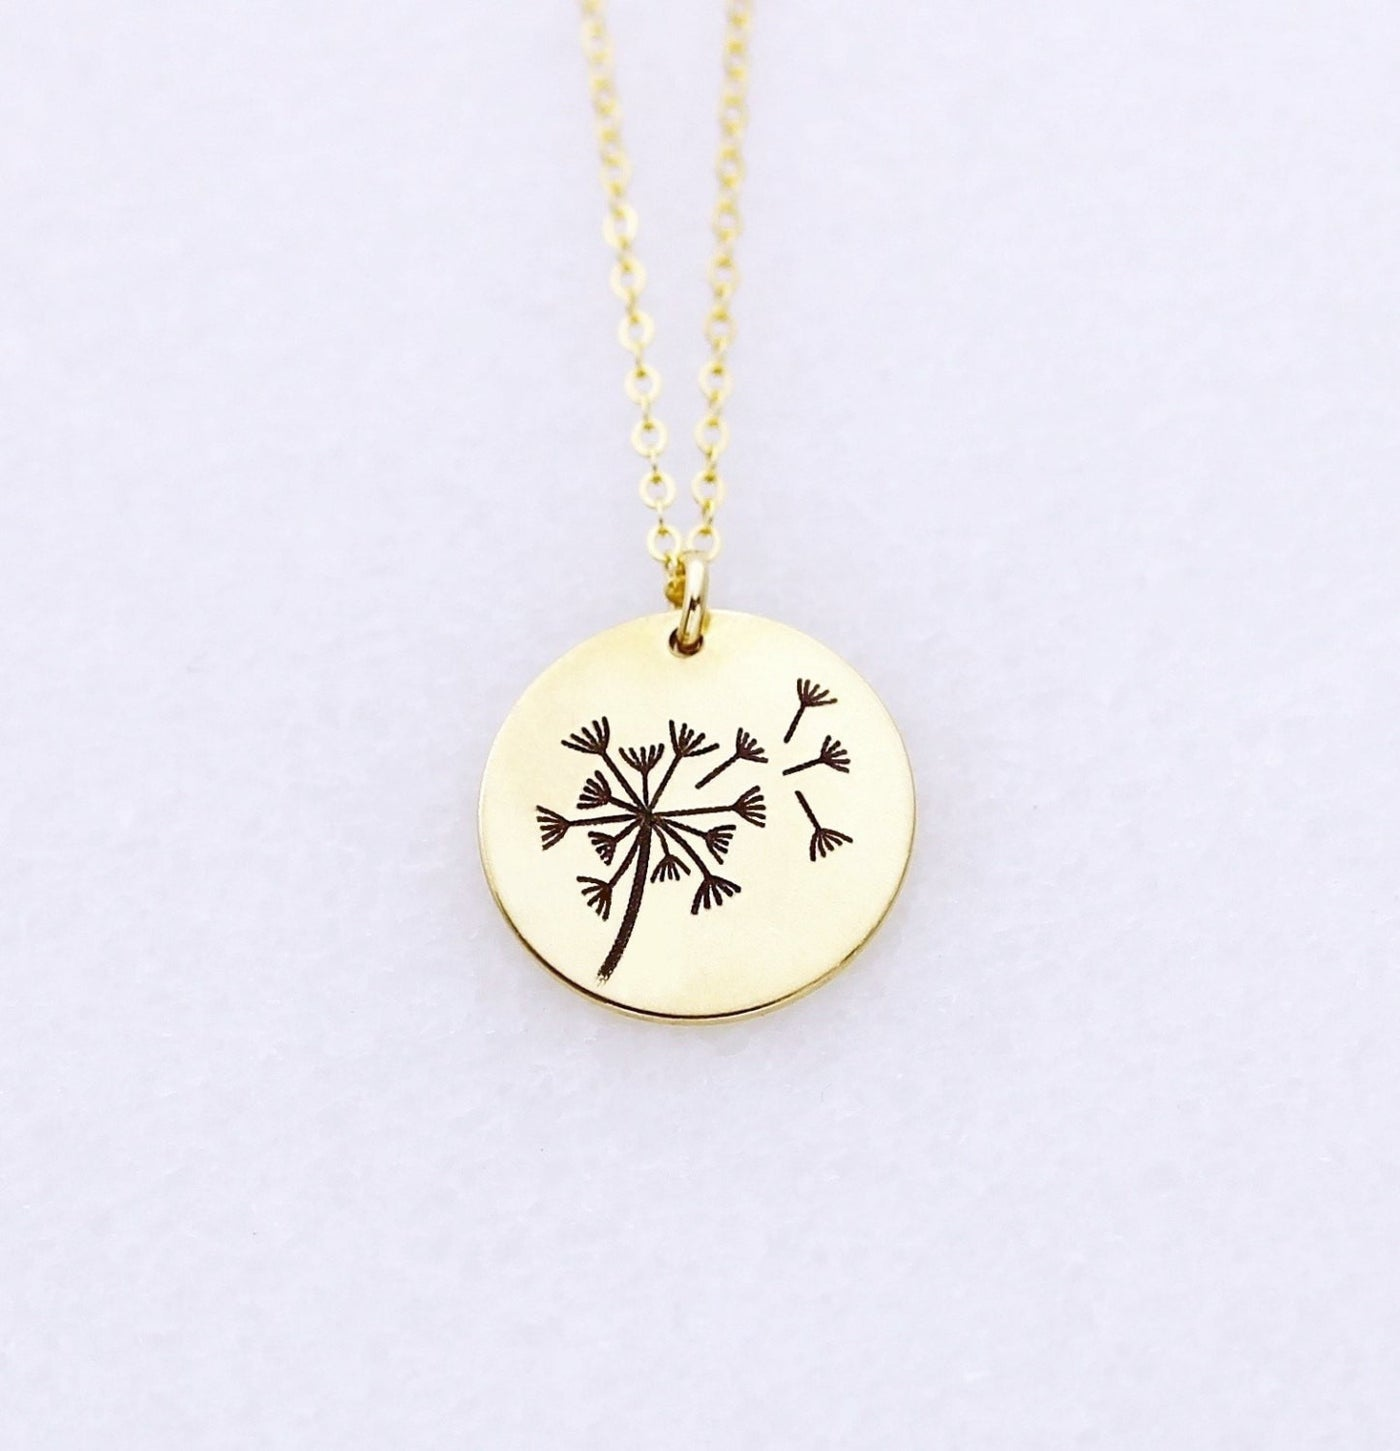 Gold Dandelion Pendant Necklace